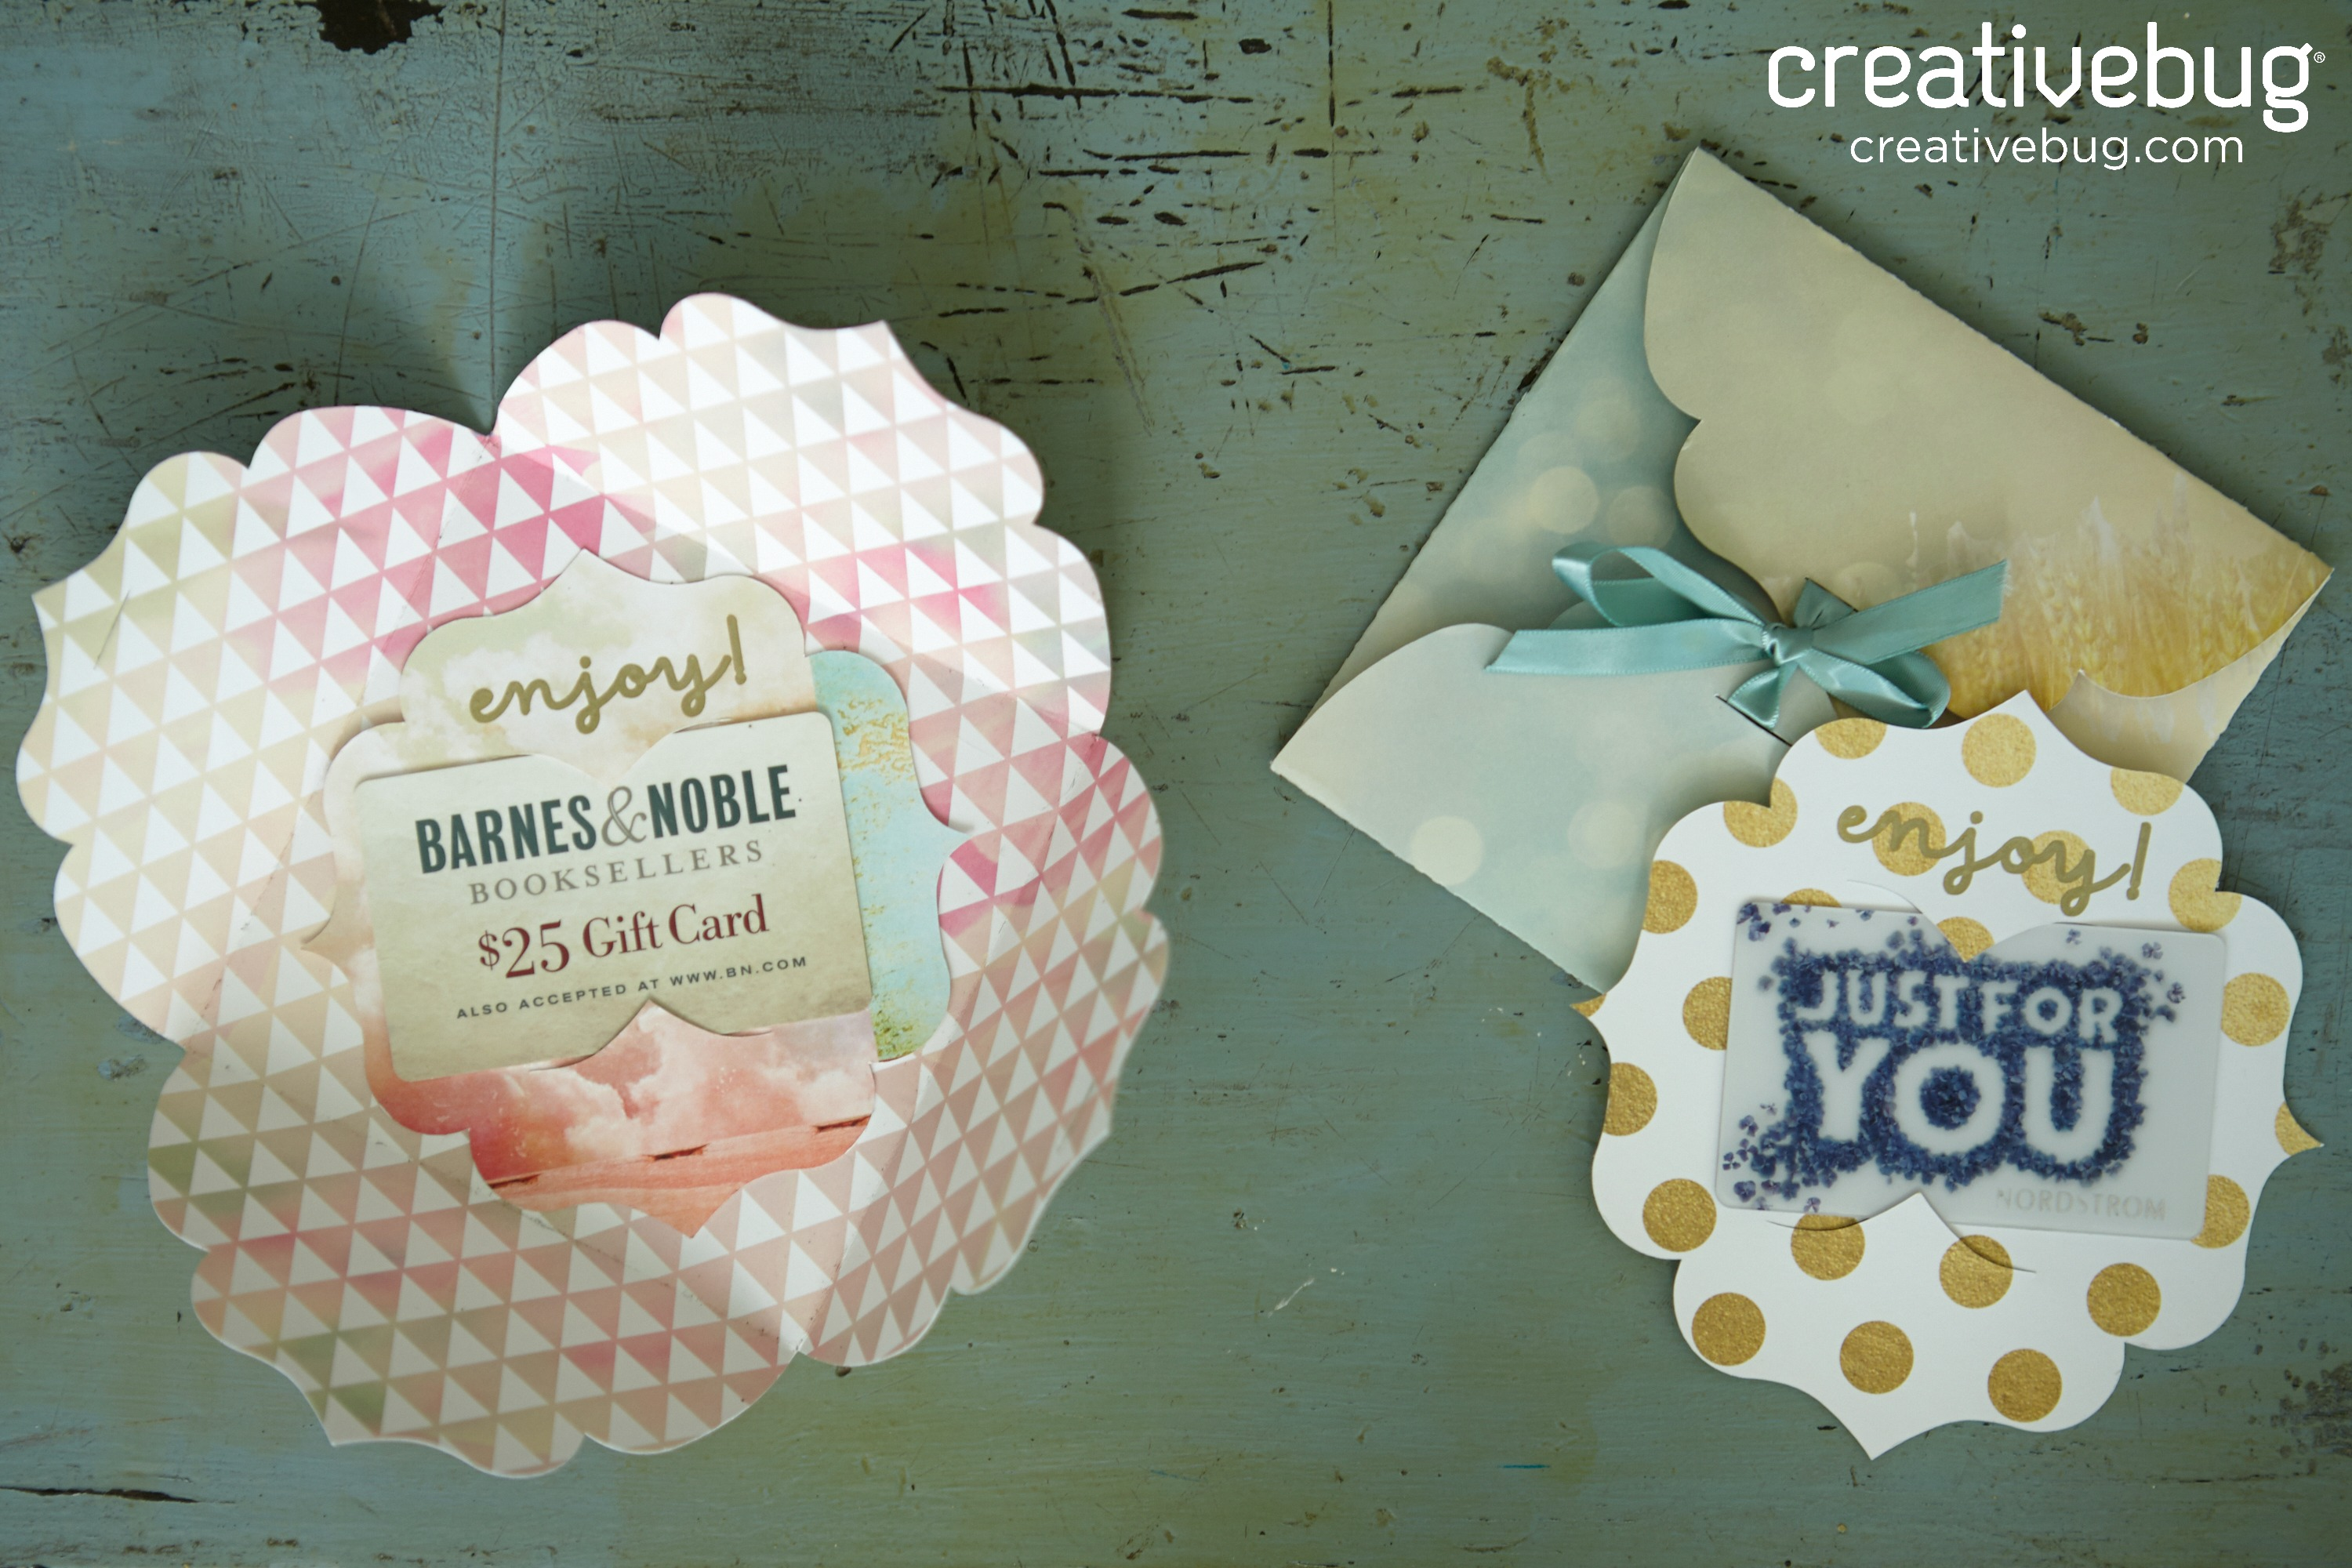 DIY Gift Card Holder and EnvelopeCreativebug Video Tutorial